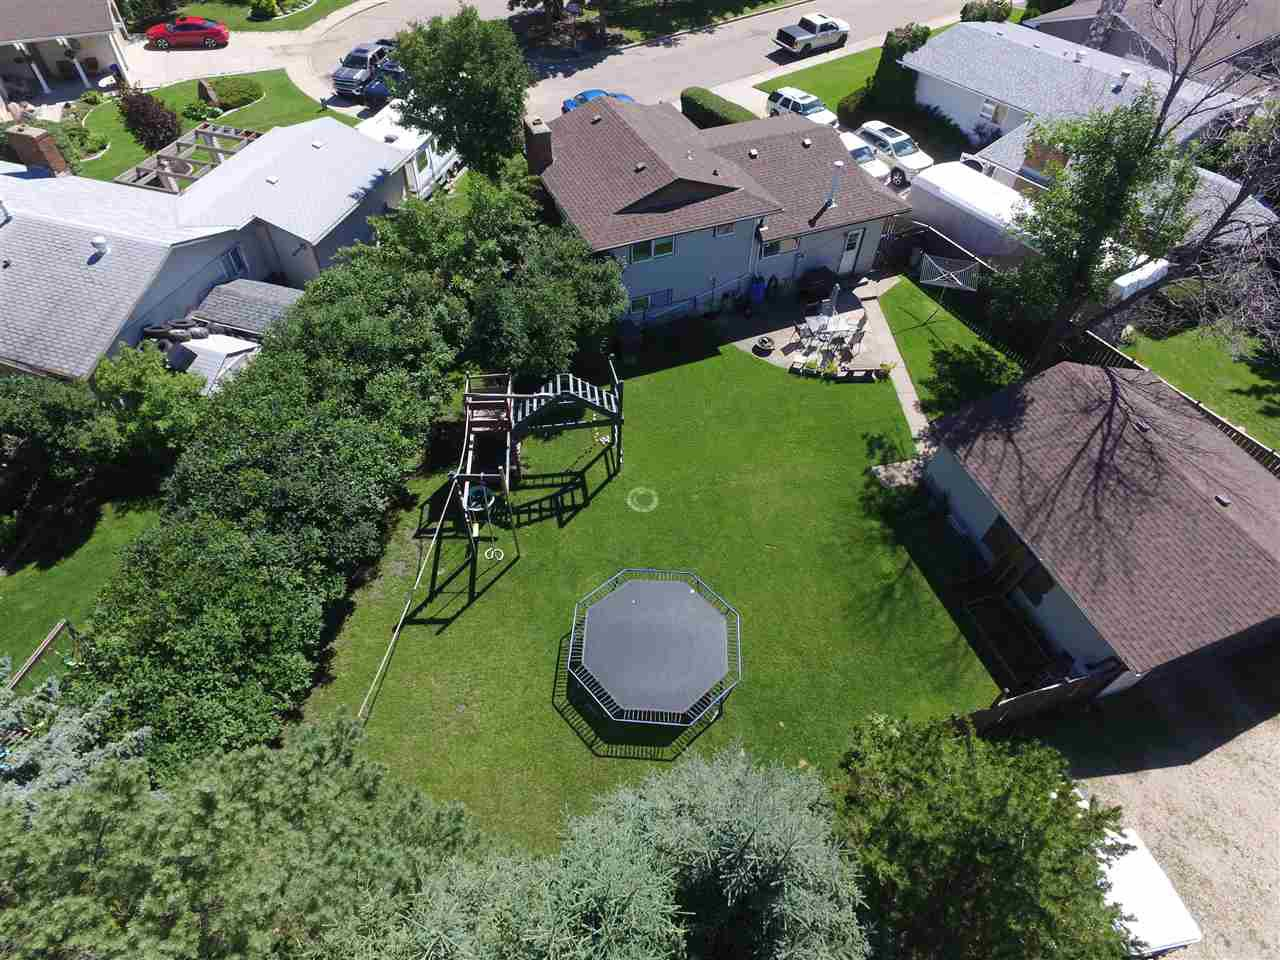 Photo 27: Photos: 125 Spruce Crescent: Wetaskiwin House for sale : MLS®# E4207728